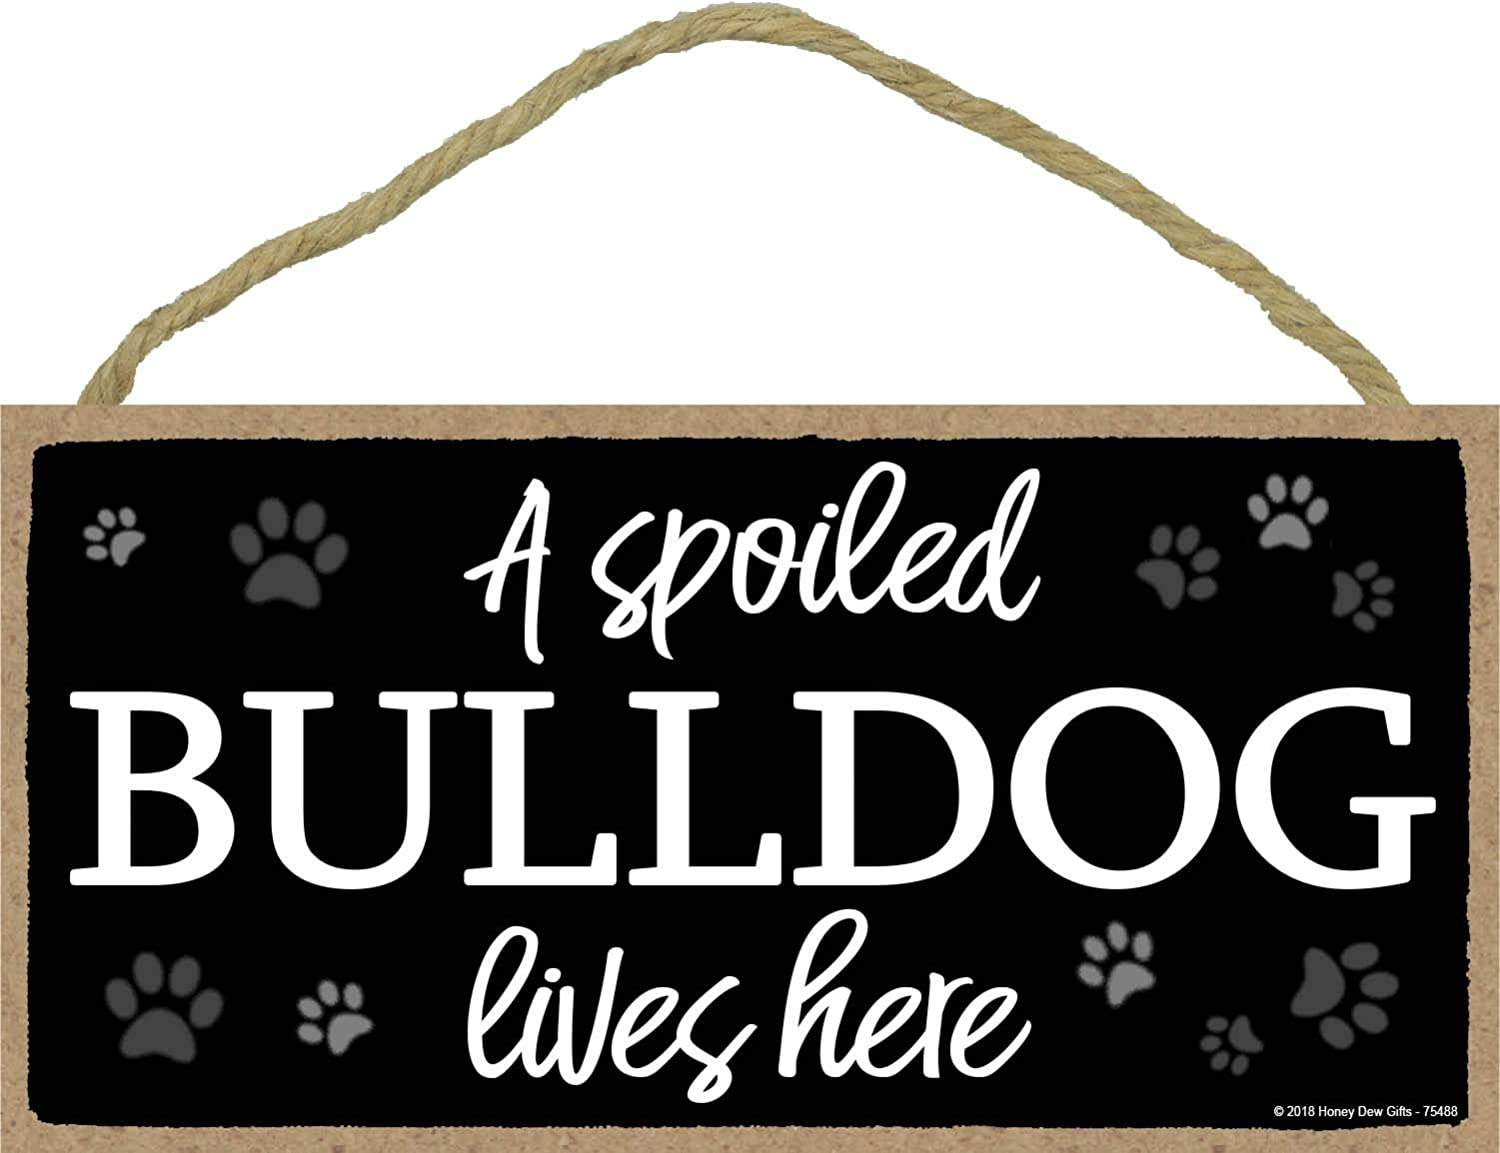 A Spoiled Bulldog Lives Here - 5 x 10 inch Hanging Wood Sign Home Decor, Wall Art, Bulldog Gifts